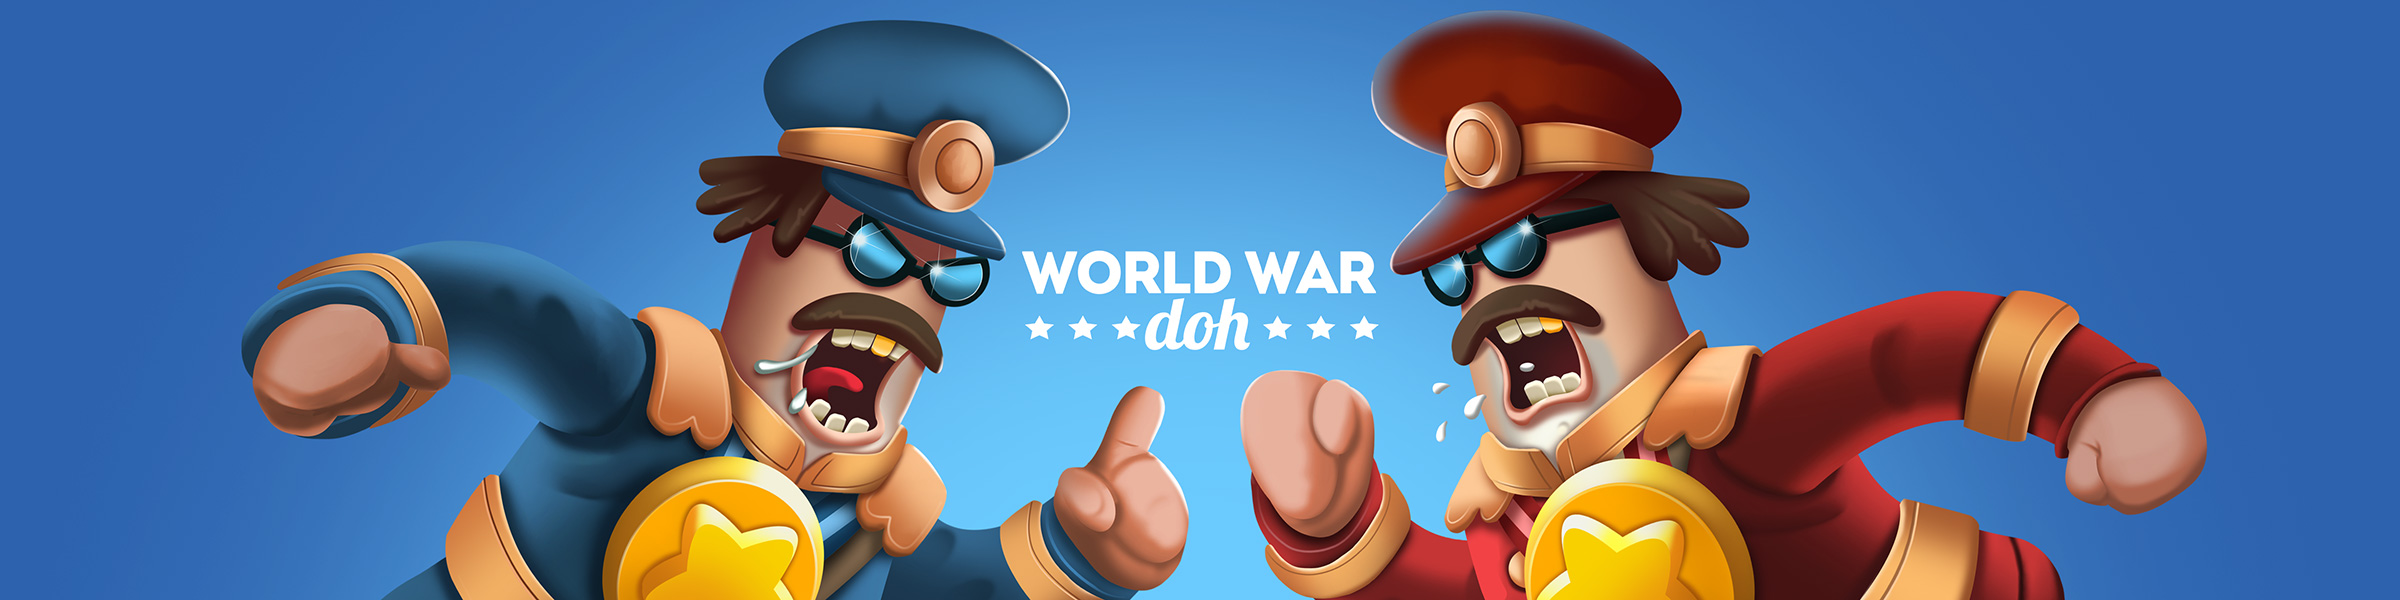 World War Doh